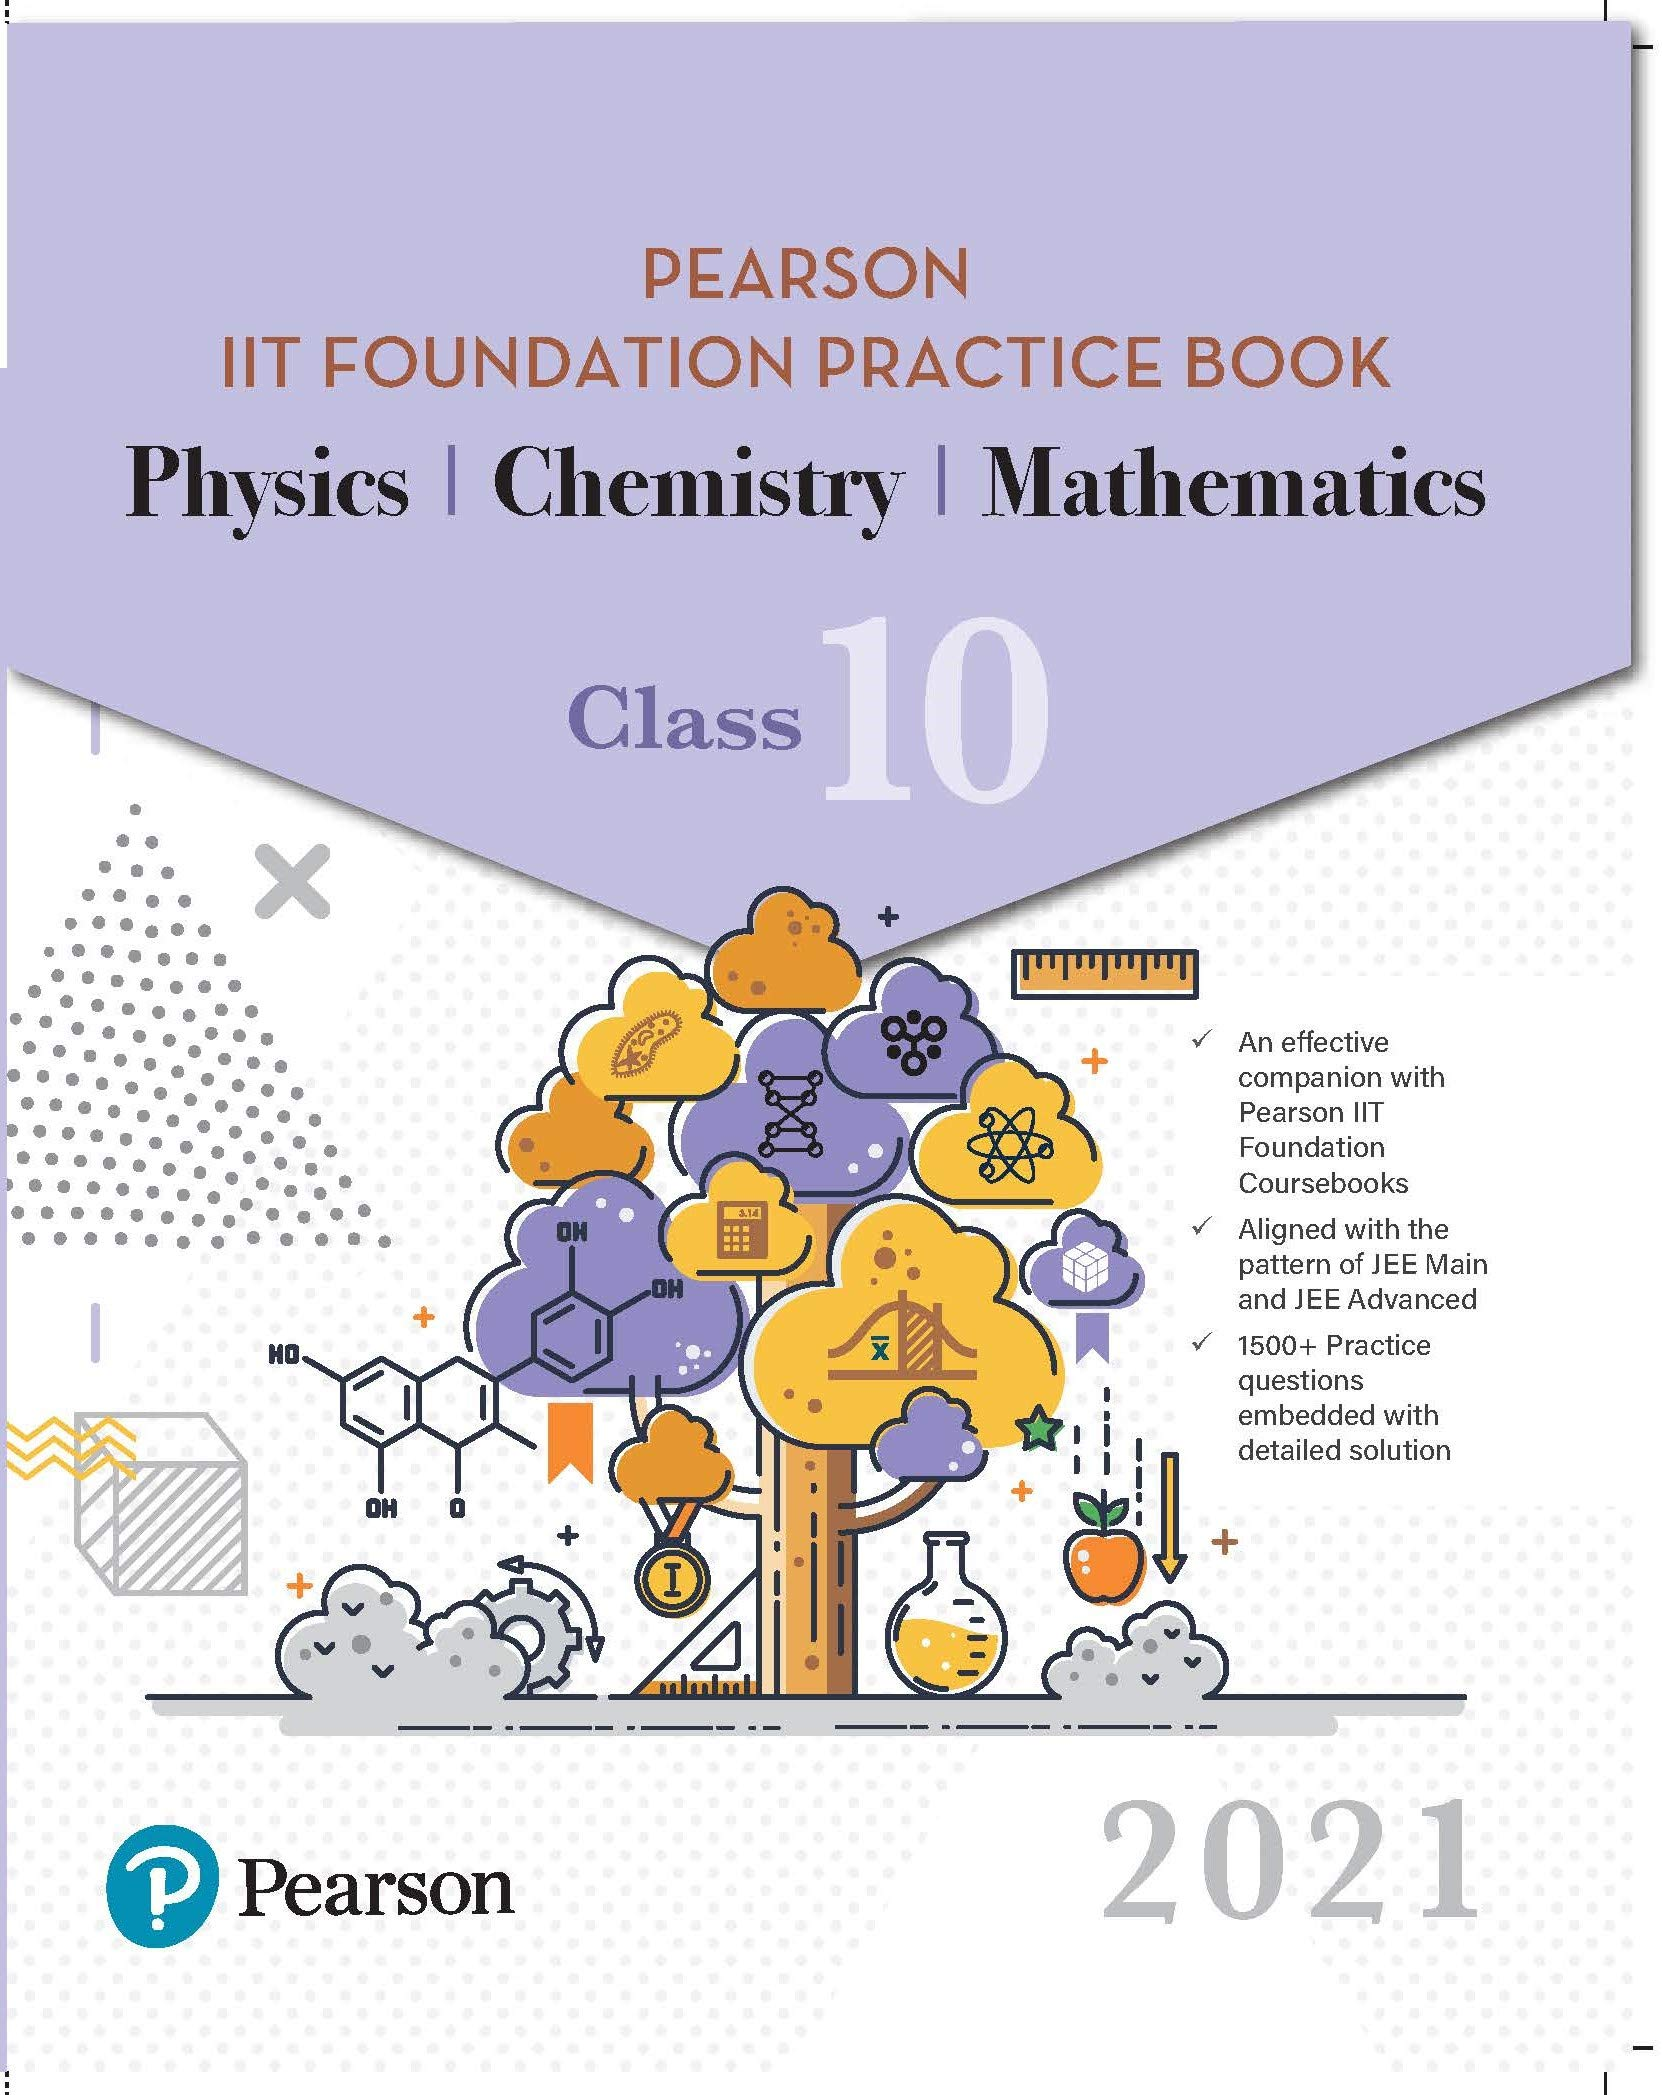 PEARSON IIT FOUNDATION PRACTICE BOOK PHYSICS, CHEMISTRY & MATHEMATICS | Class 10 | 2021 Edition| By Pearson